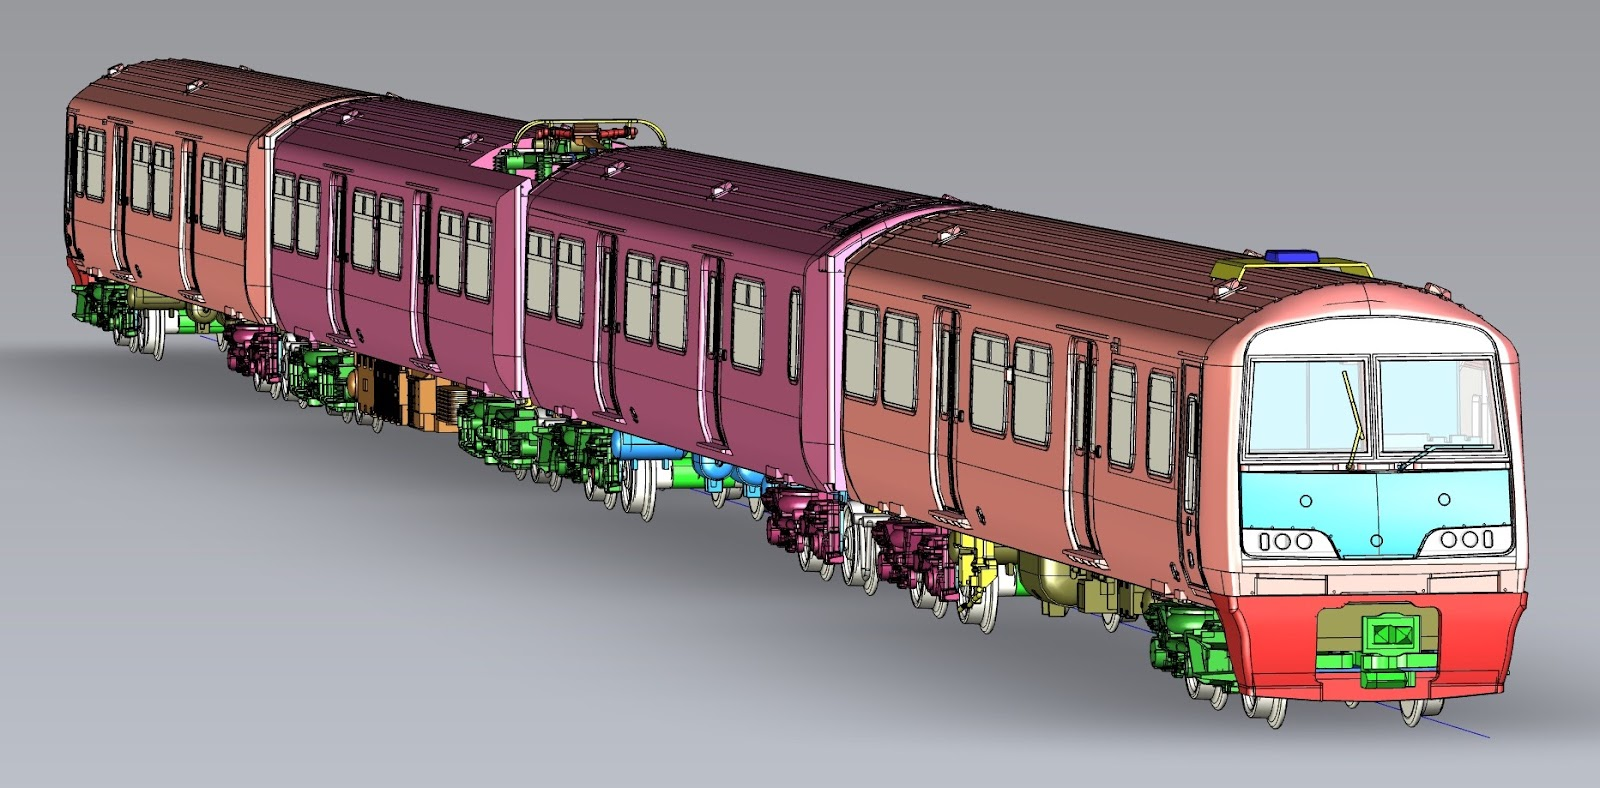 Model Railway News Roundup - October 2018 from Hattons Model